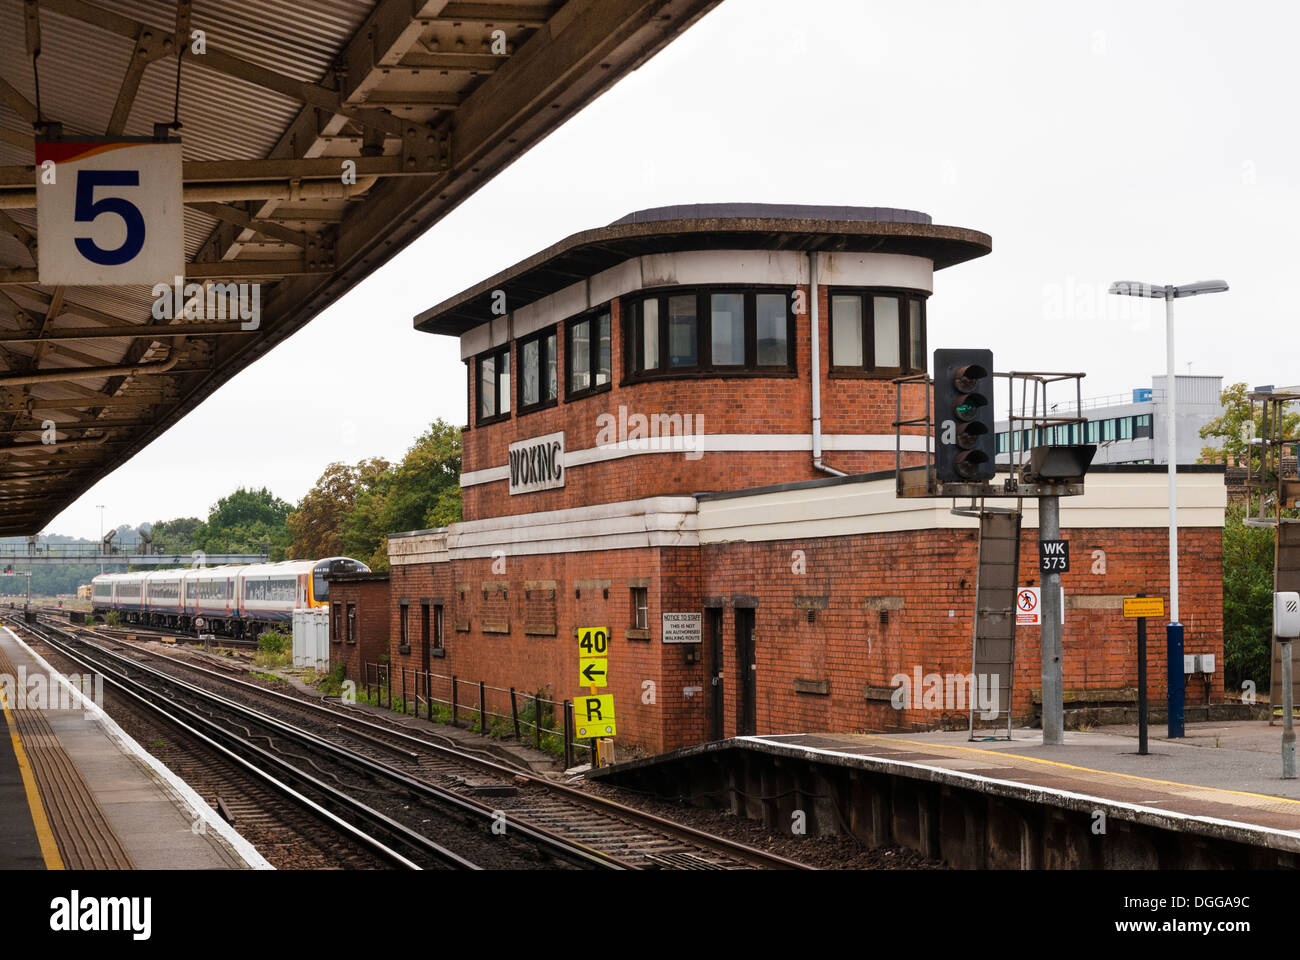 woking station signal box - Stock Image